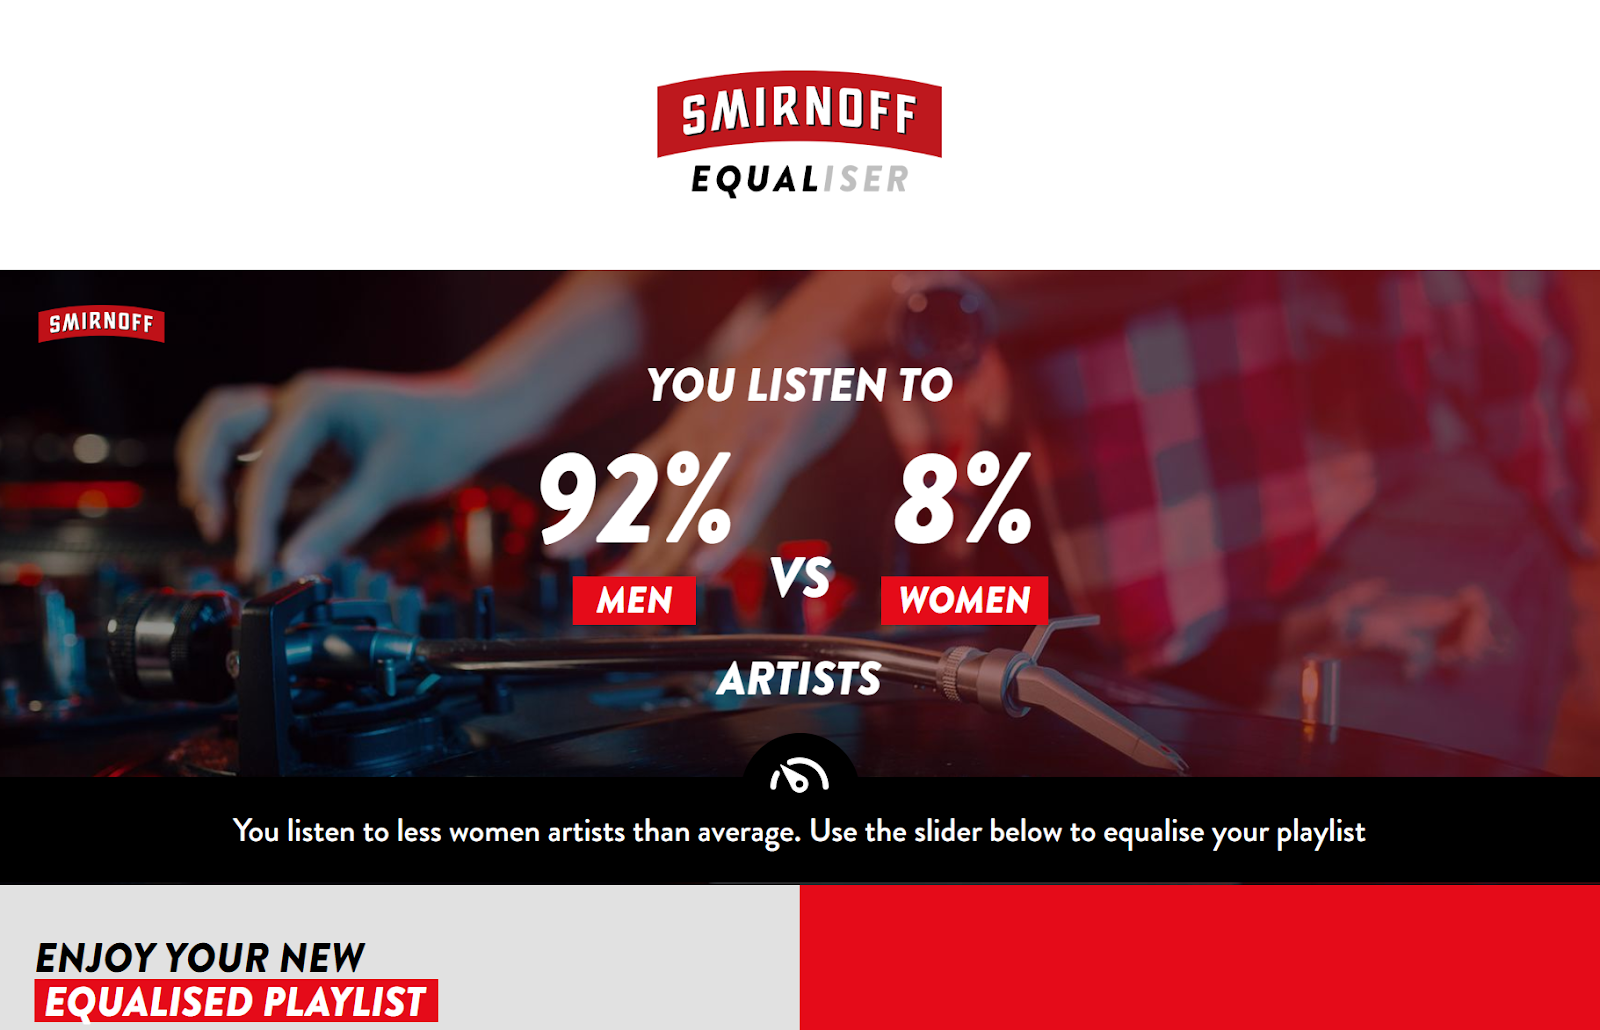 What Smirnoff Equaliser Means for Music - Audio Ordeal